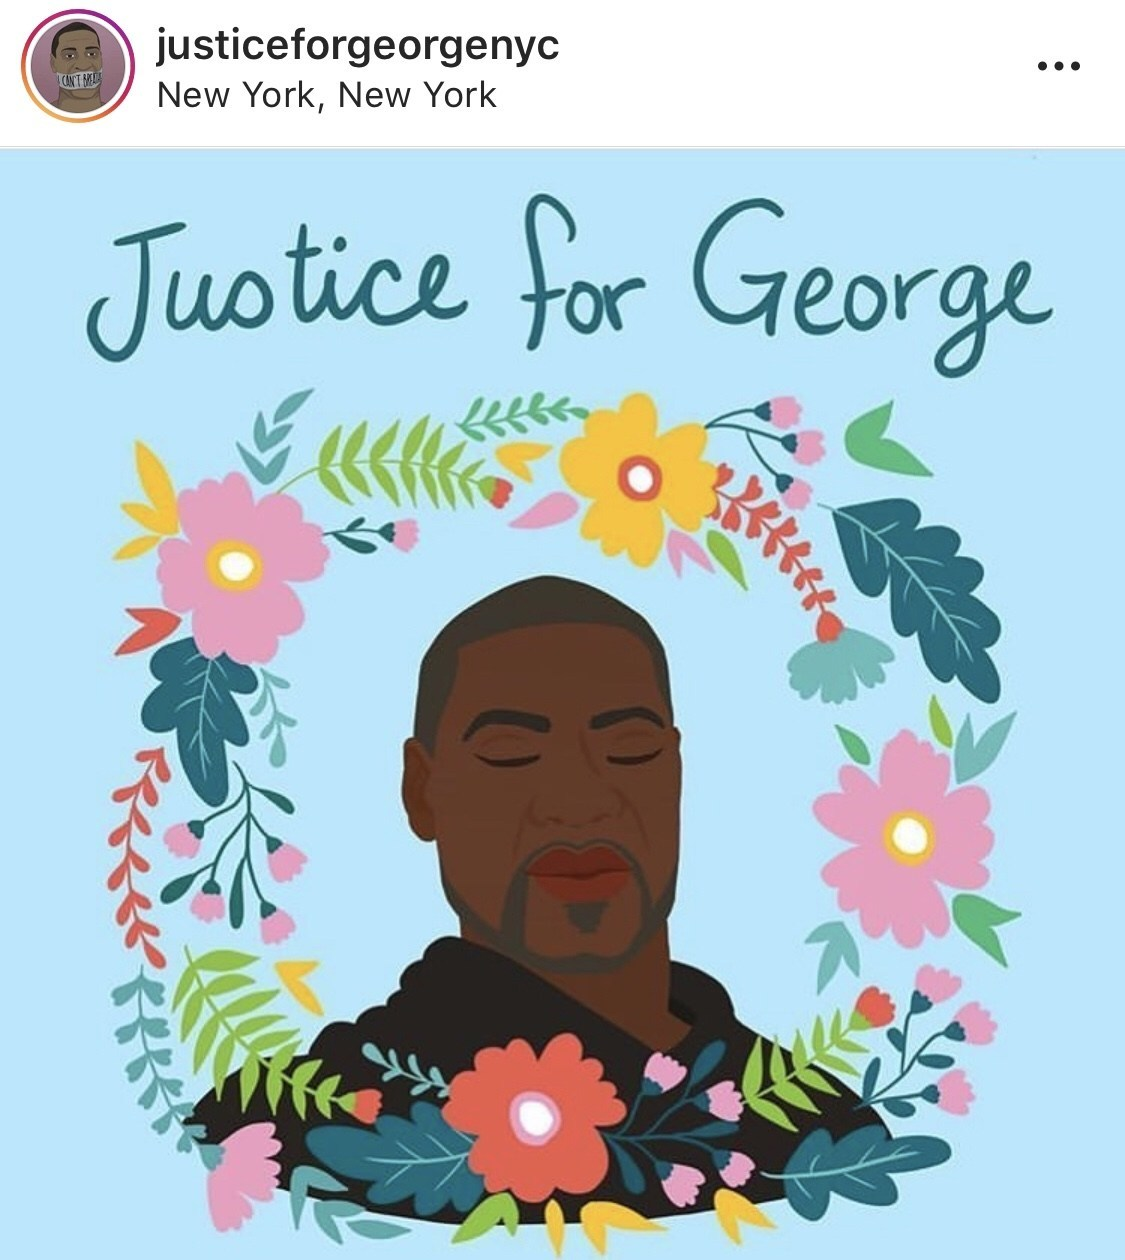 How a Spontaneous Instagram Account Became the Central Source For BLM Protests in NYC